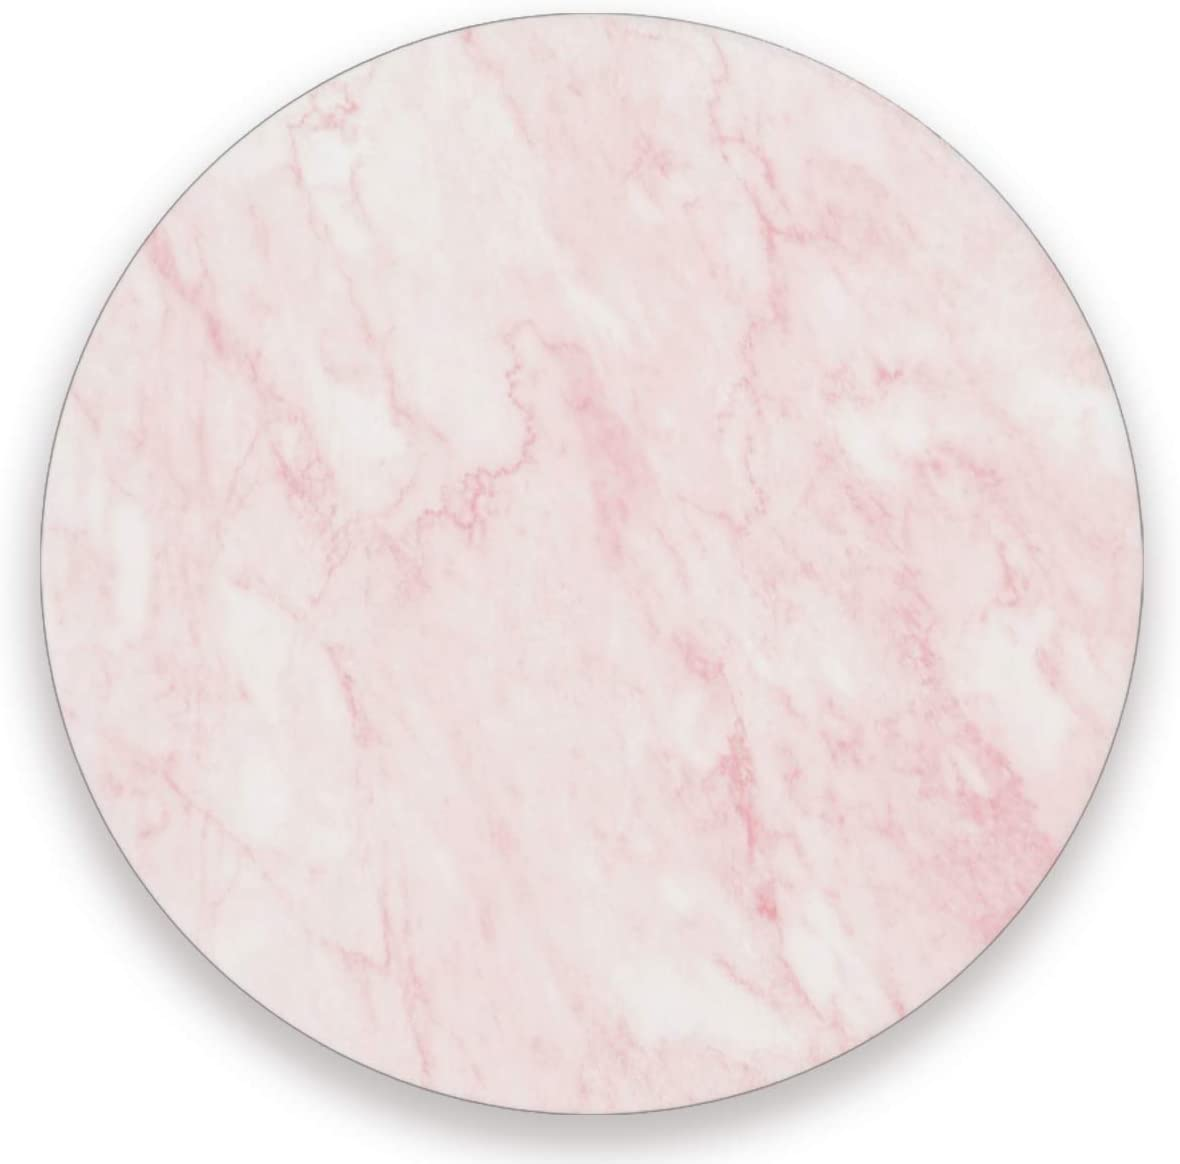 Olinyou Pink Marble Art Coaster for Drinks 1 Pieces Absorbent Ceramic Stone Coasters with Cork Base